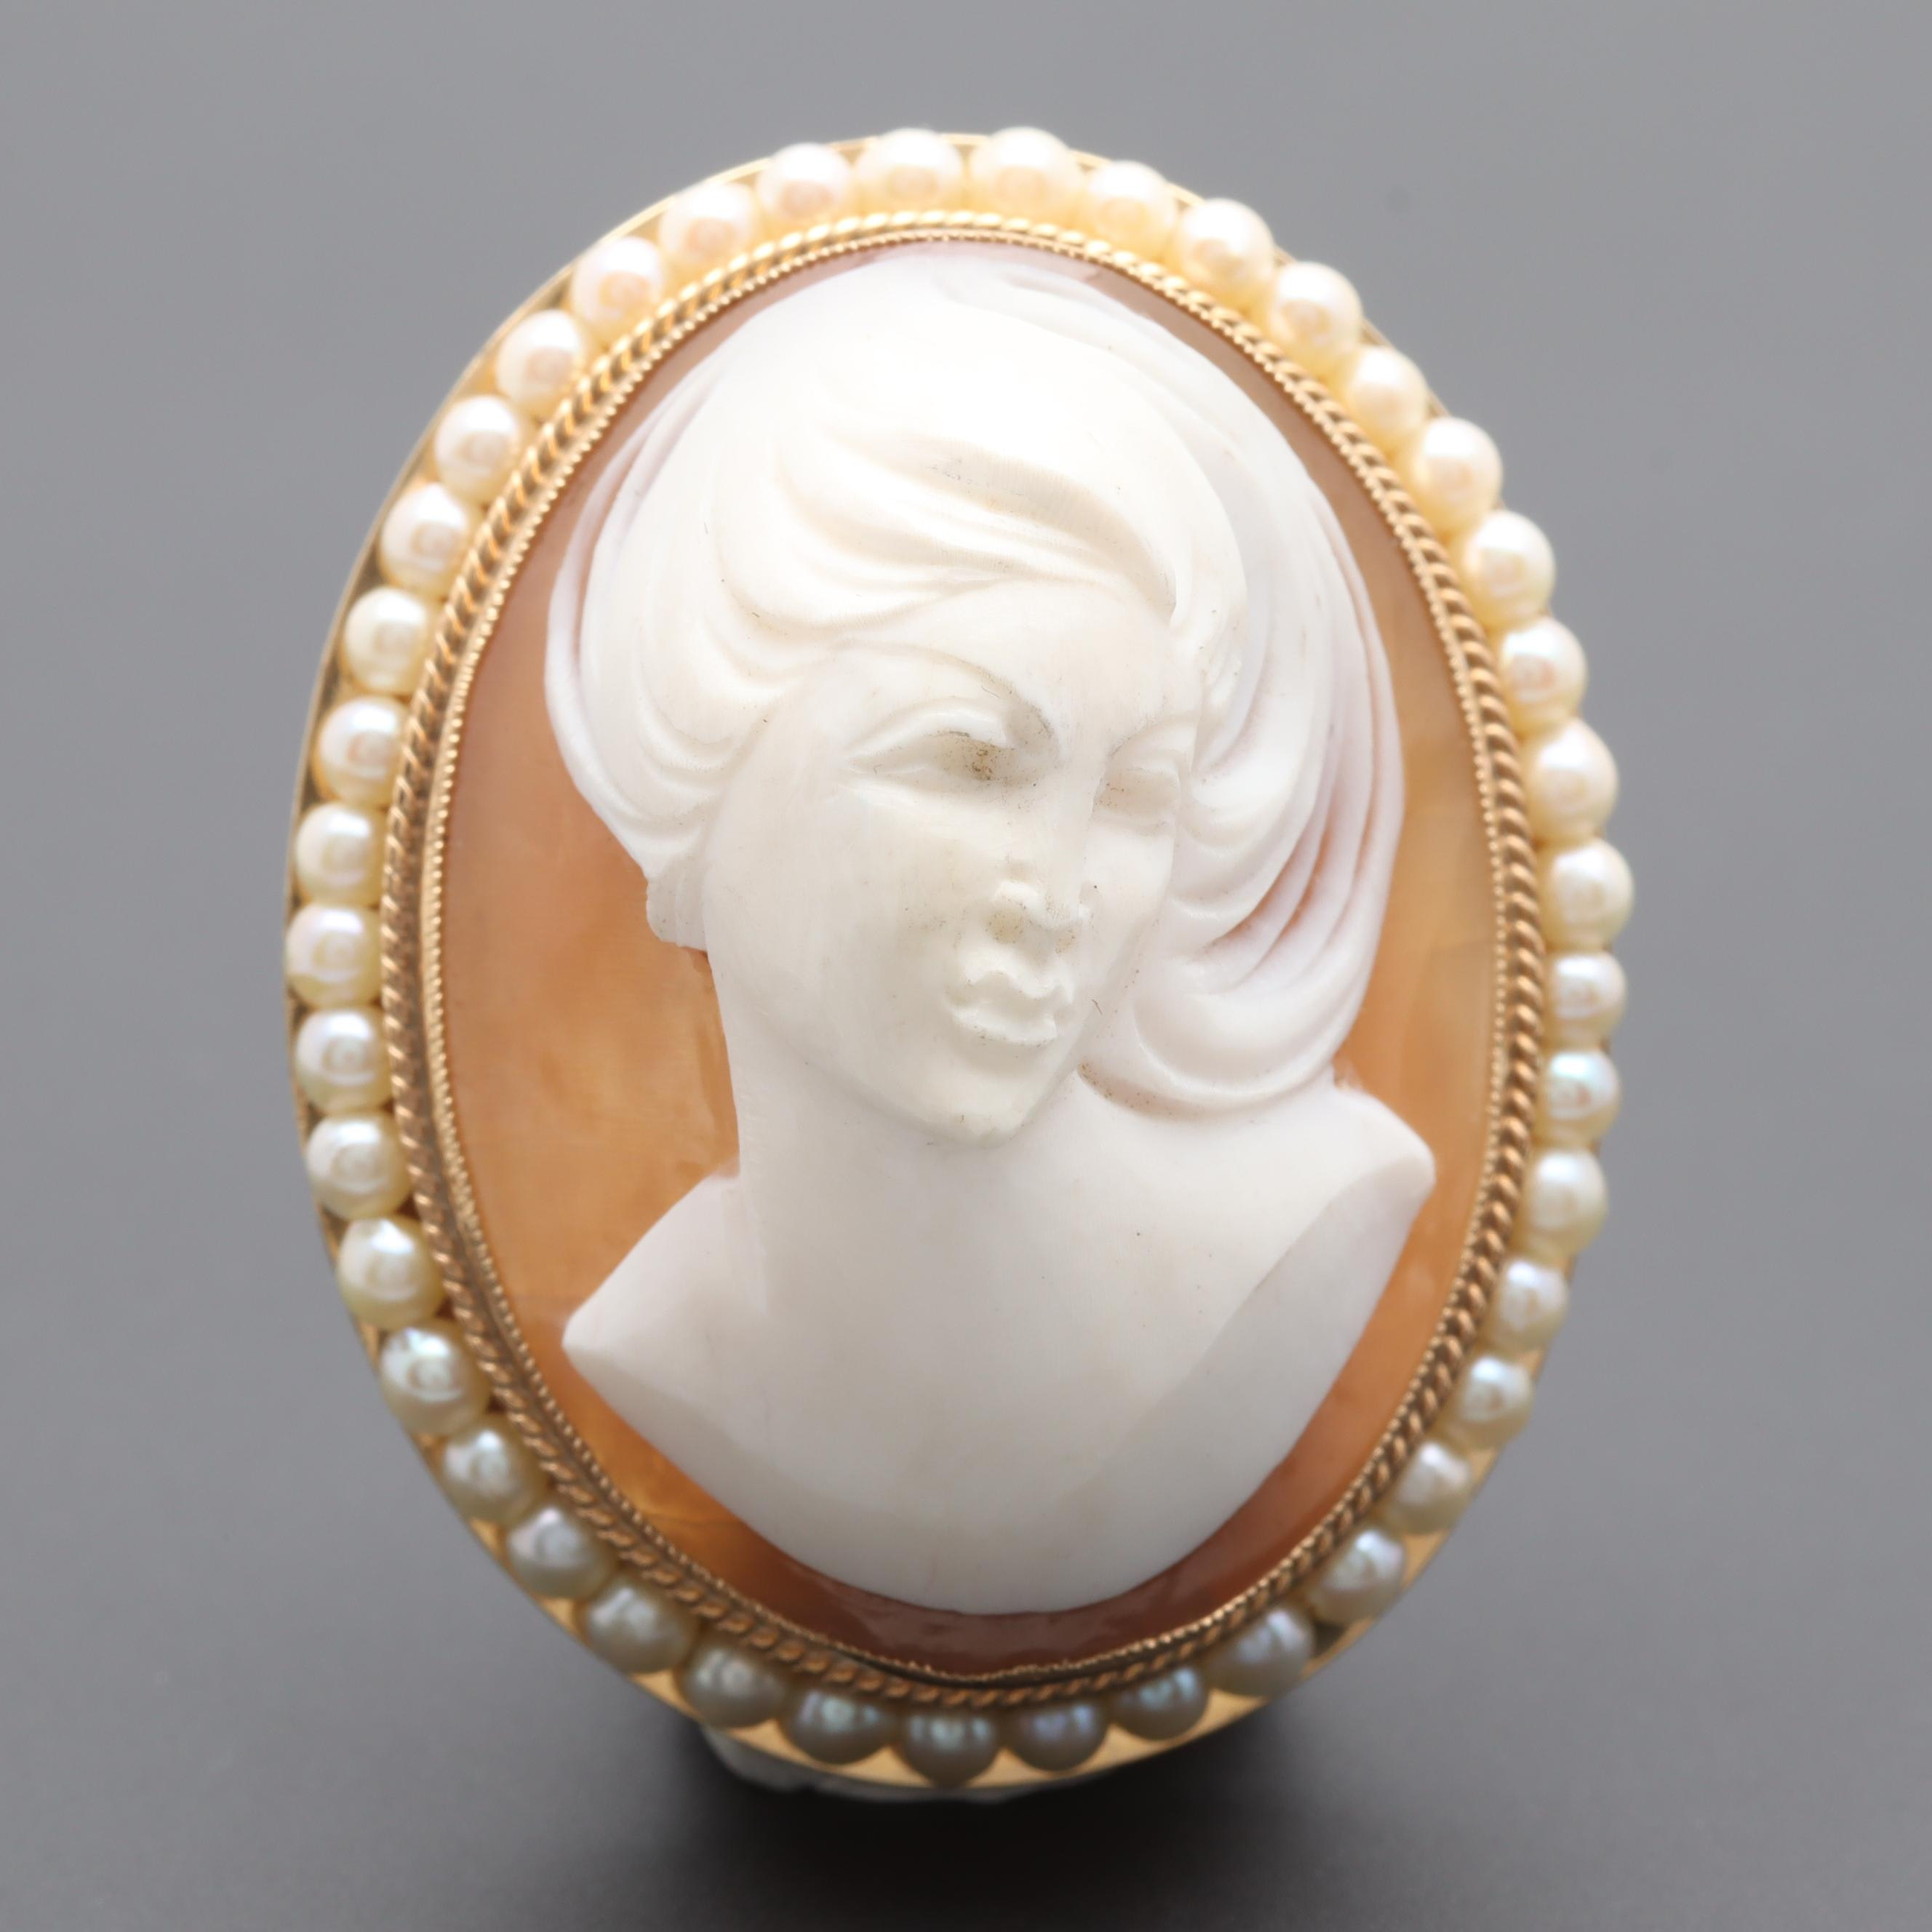 14K Yellow Gold Helmet Shell and Cultured Pearl Cameo Converter Brooch